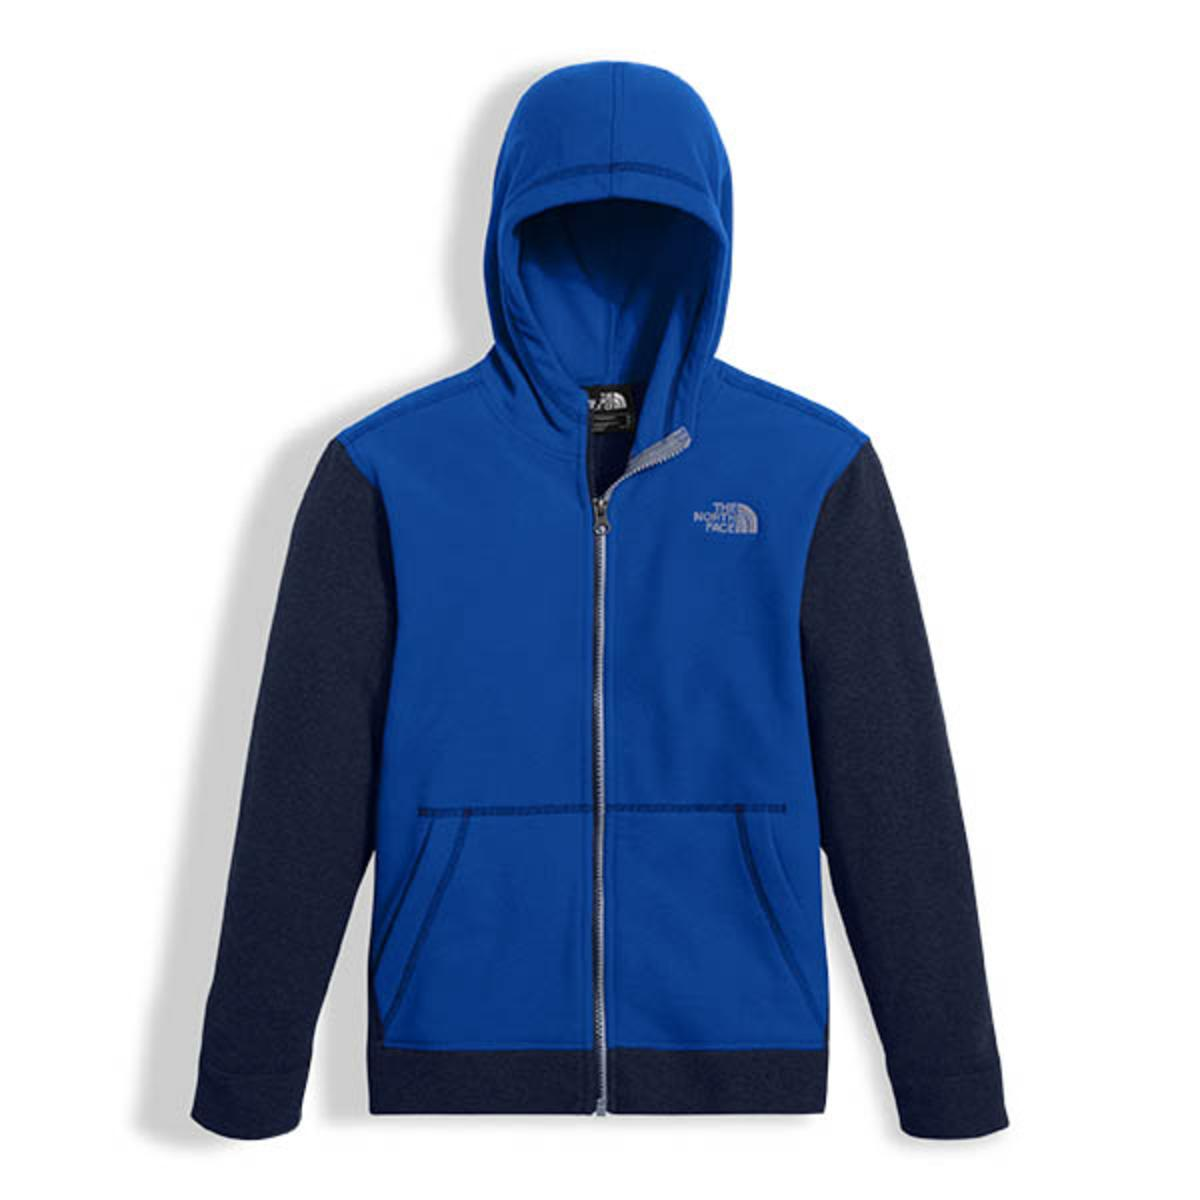 80154bf07 The North Face Boys Glacier Full Zip Hoodie - The Warming Store